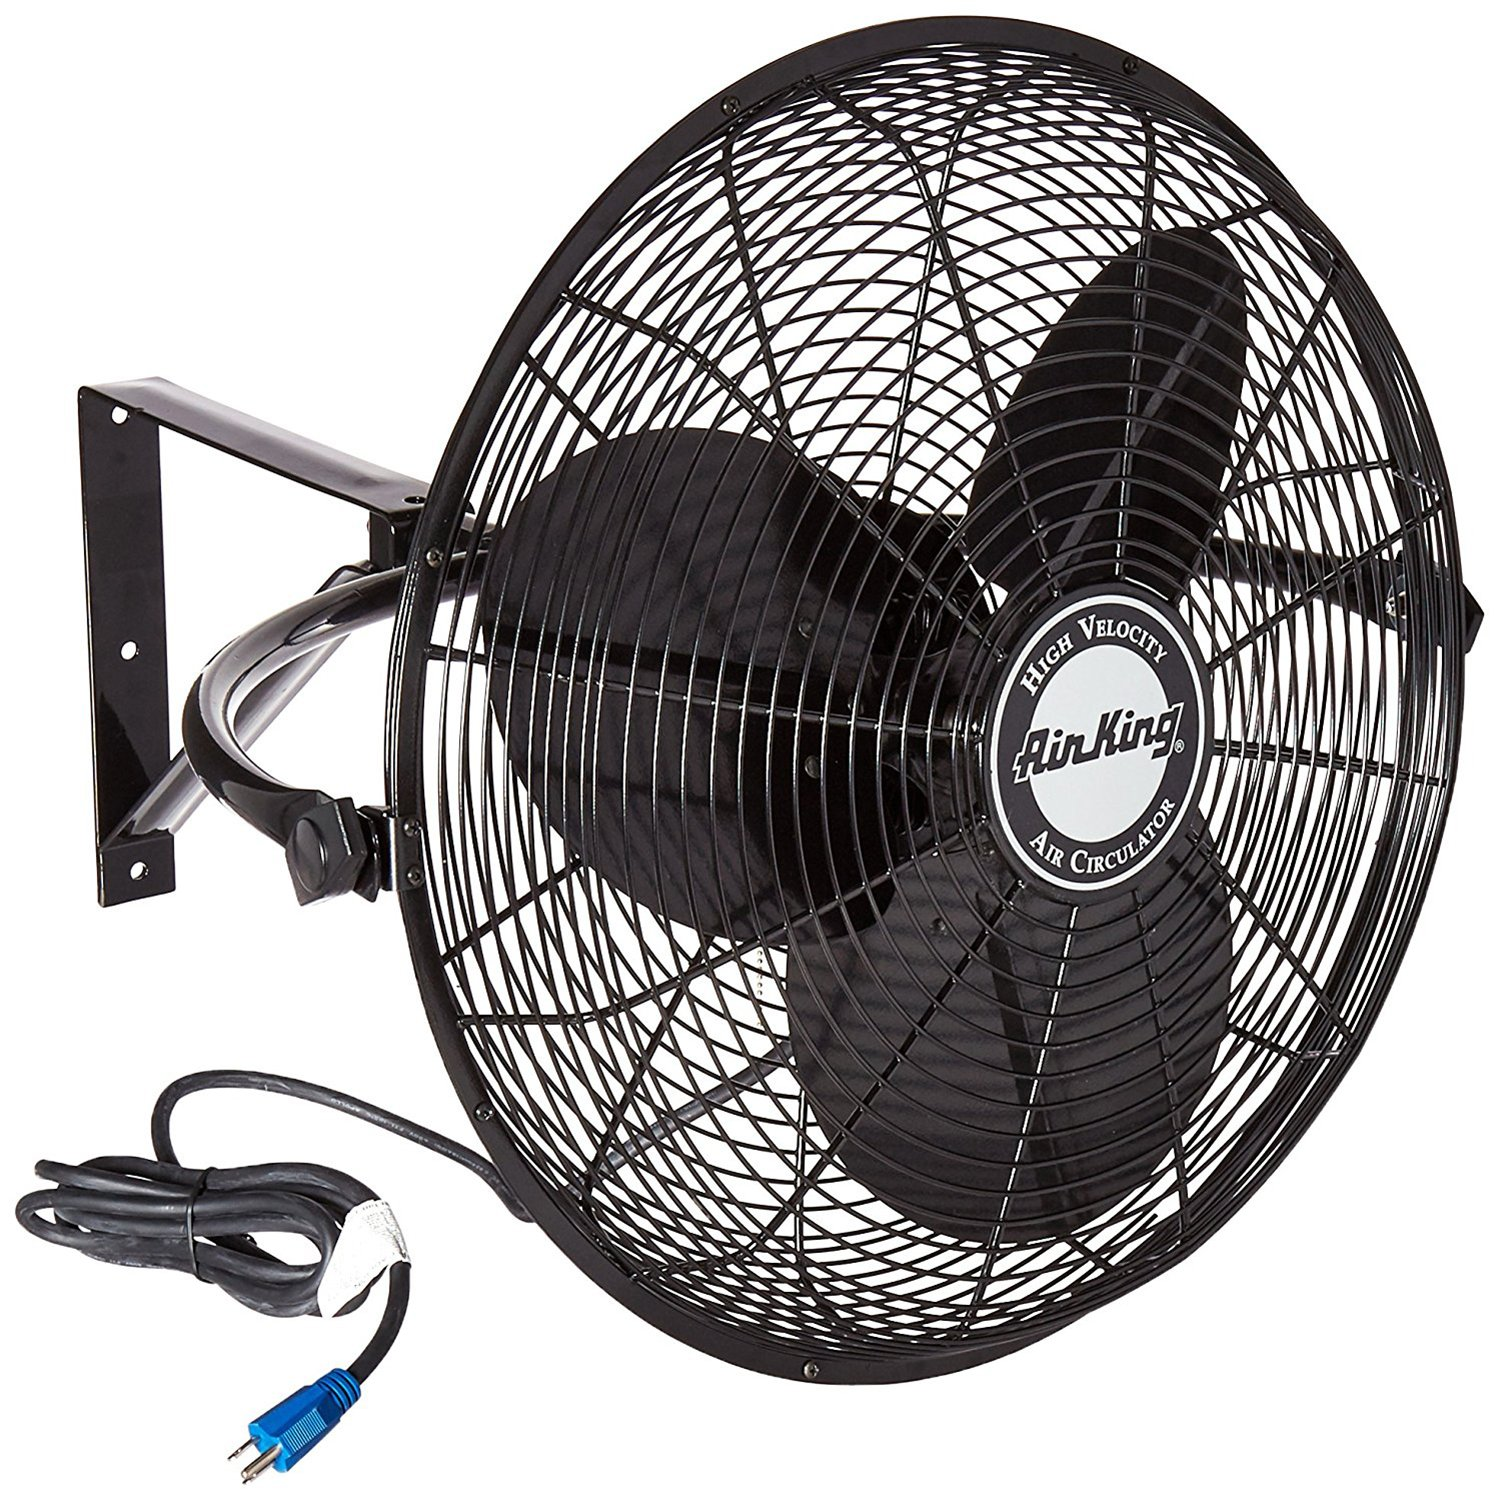 Wall Mount Fans : Air king quot hp speed non oscillating totally